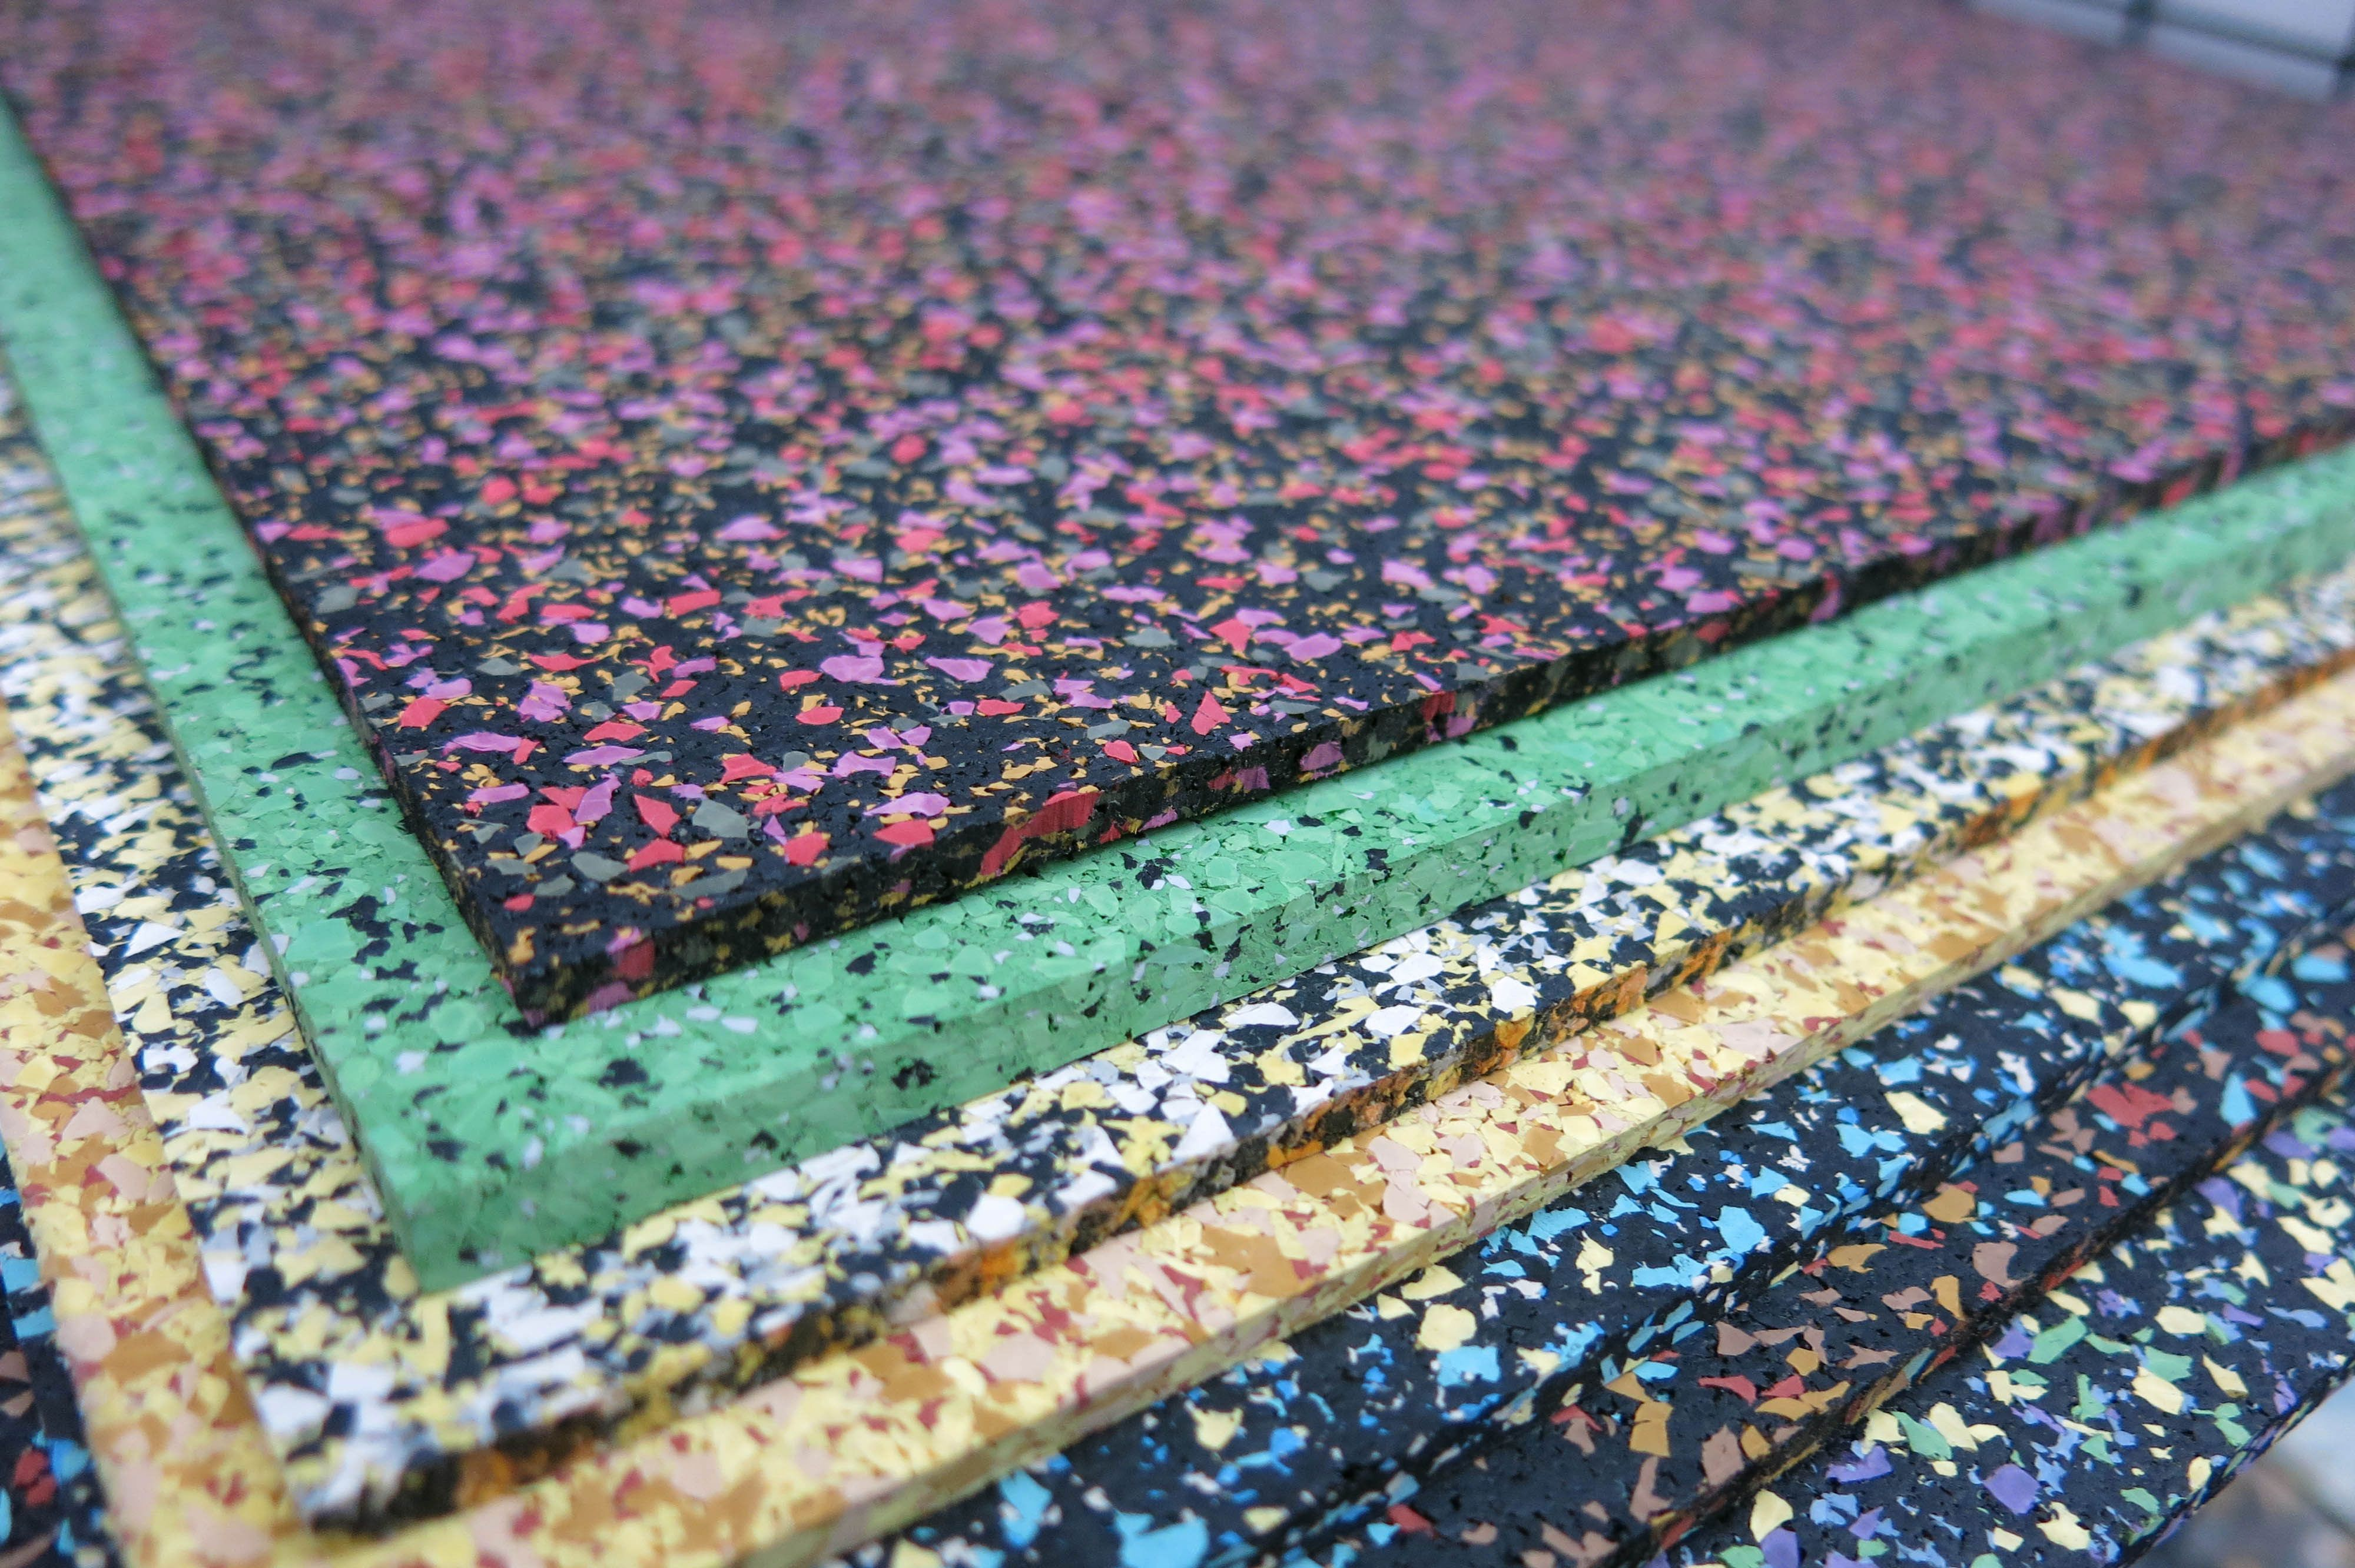 Colored Rubber Flooring To Soften/protect The Floor And Provide Support.  Weight Room Flooring